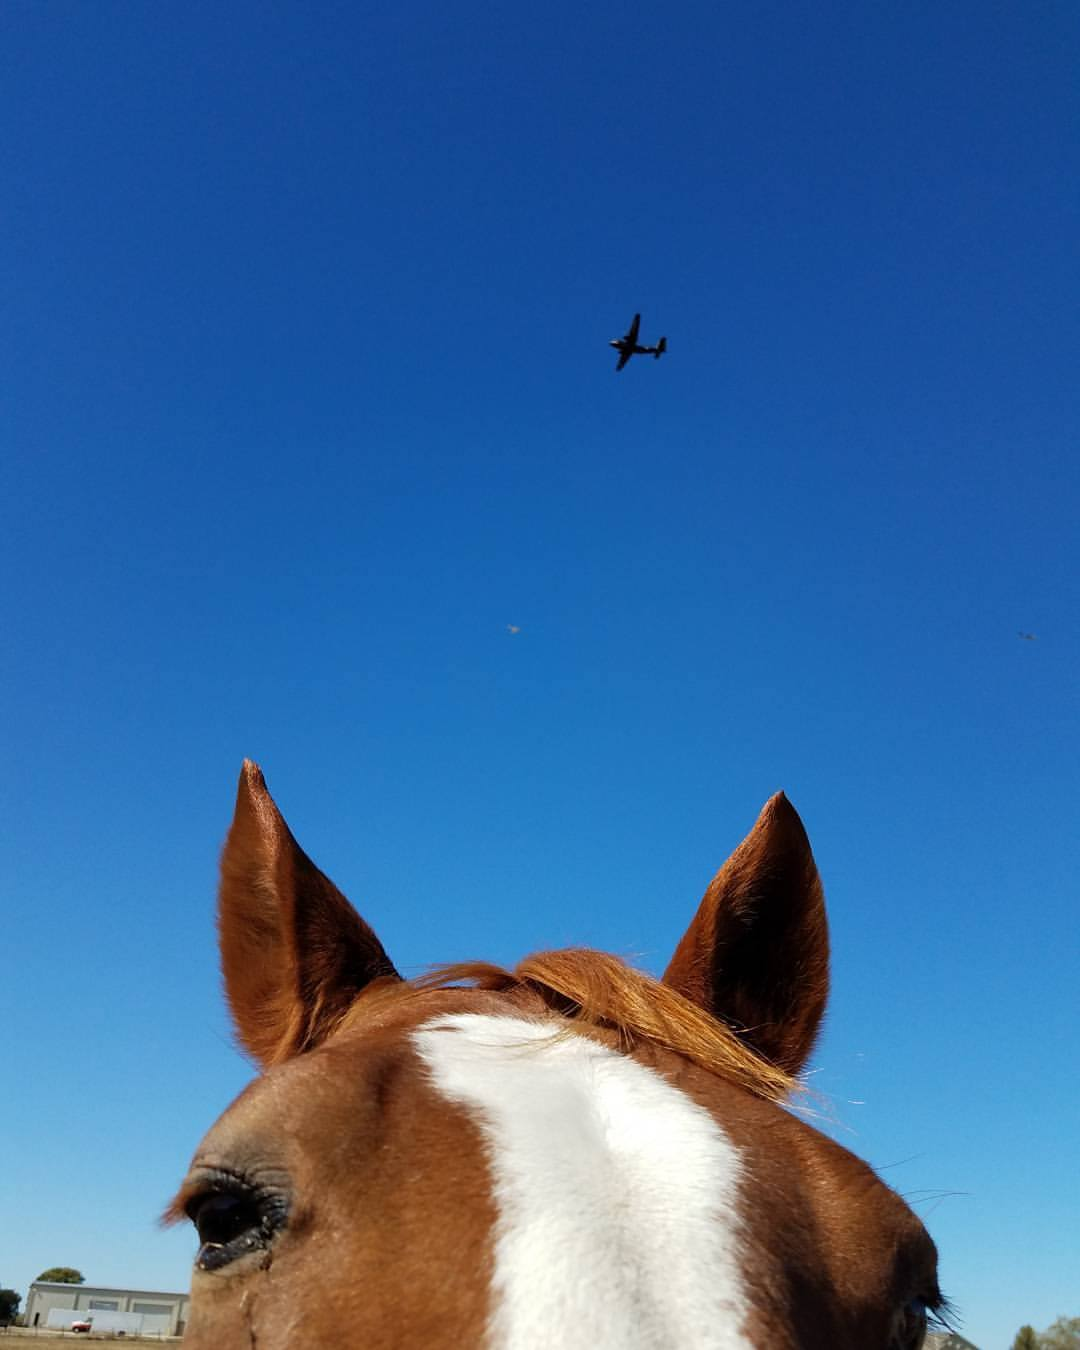 Herbie's thoughts on the annual air show